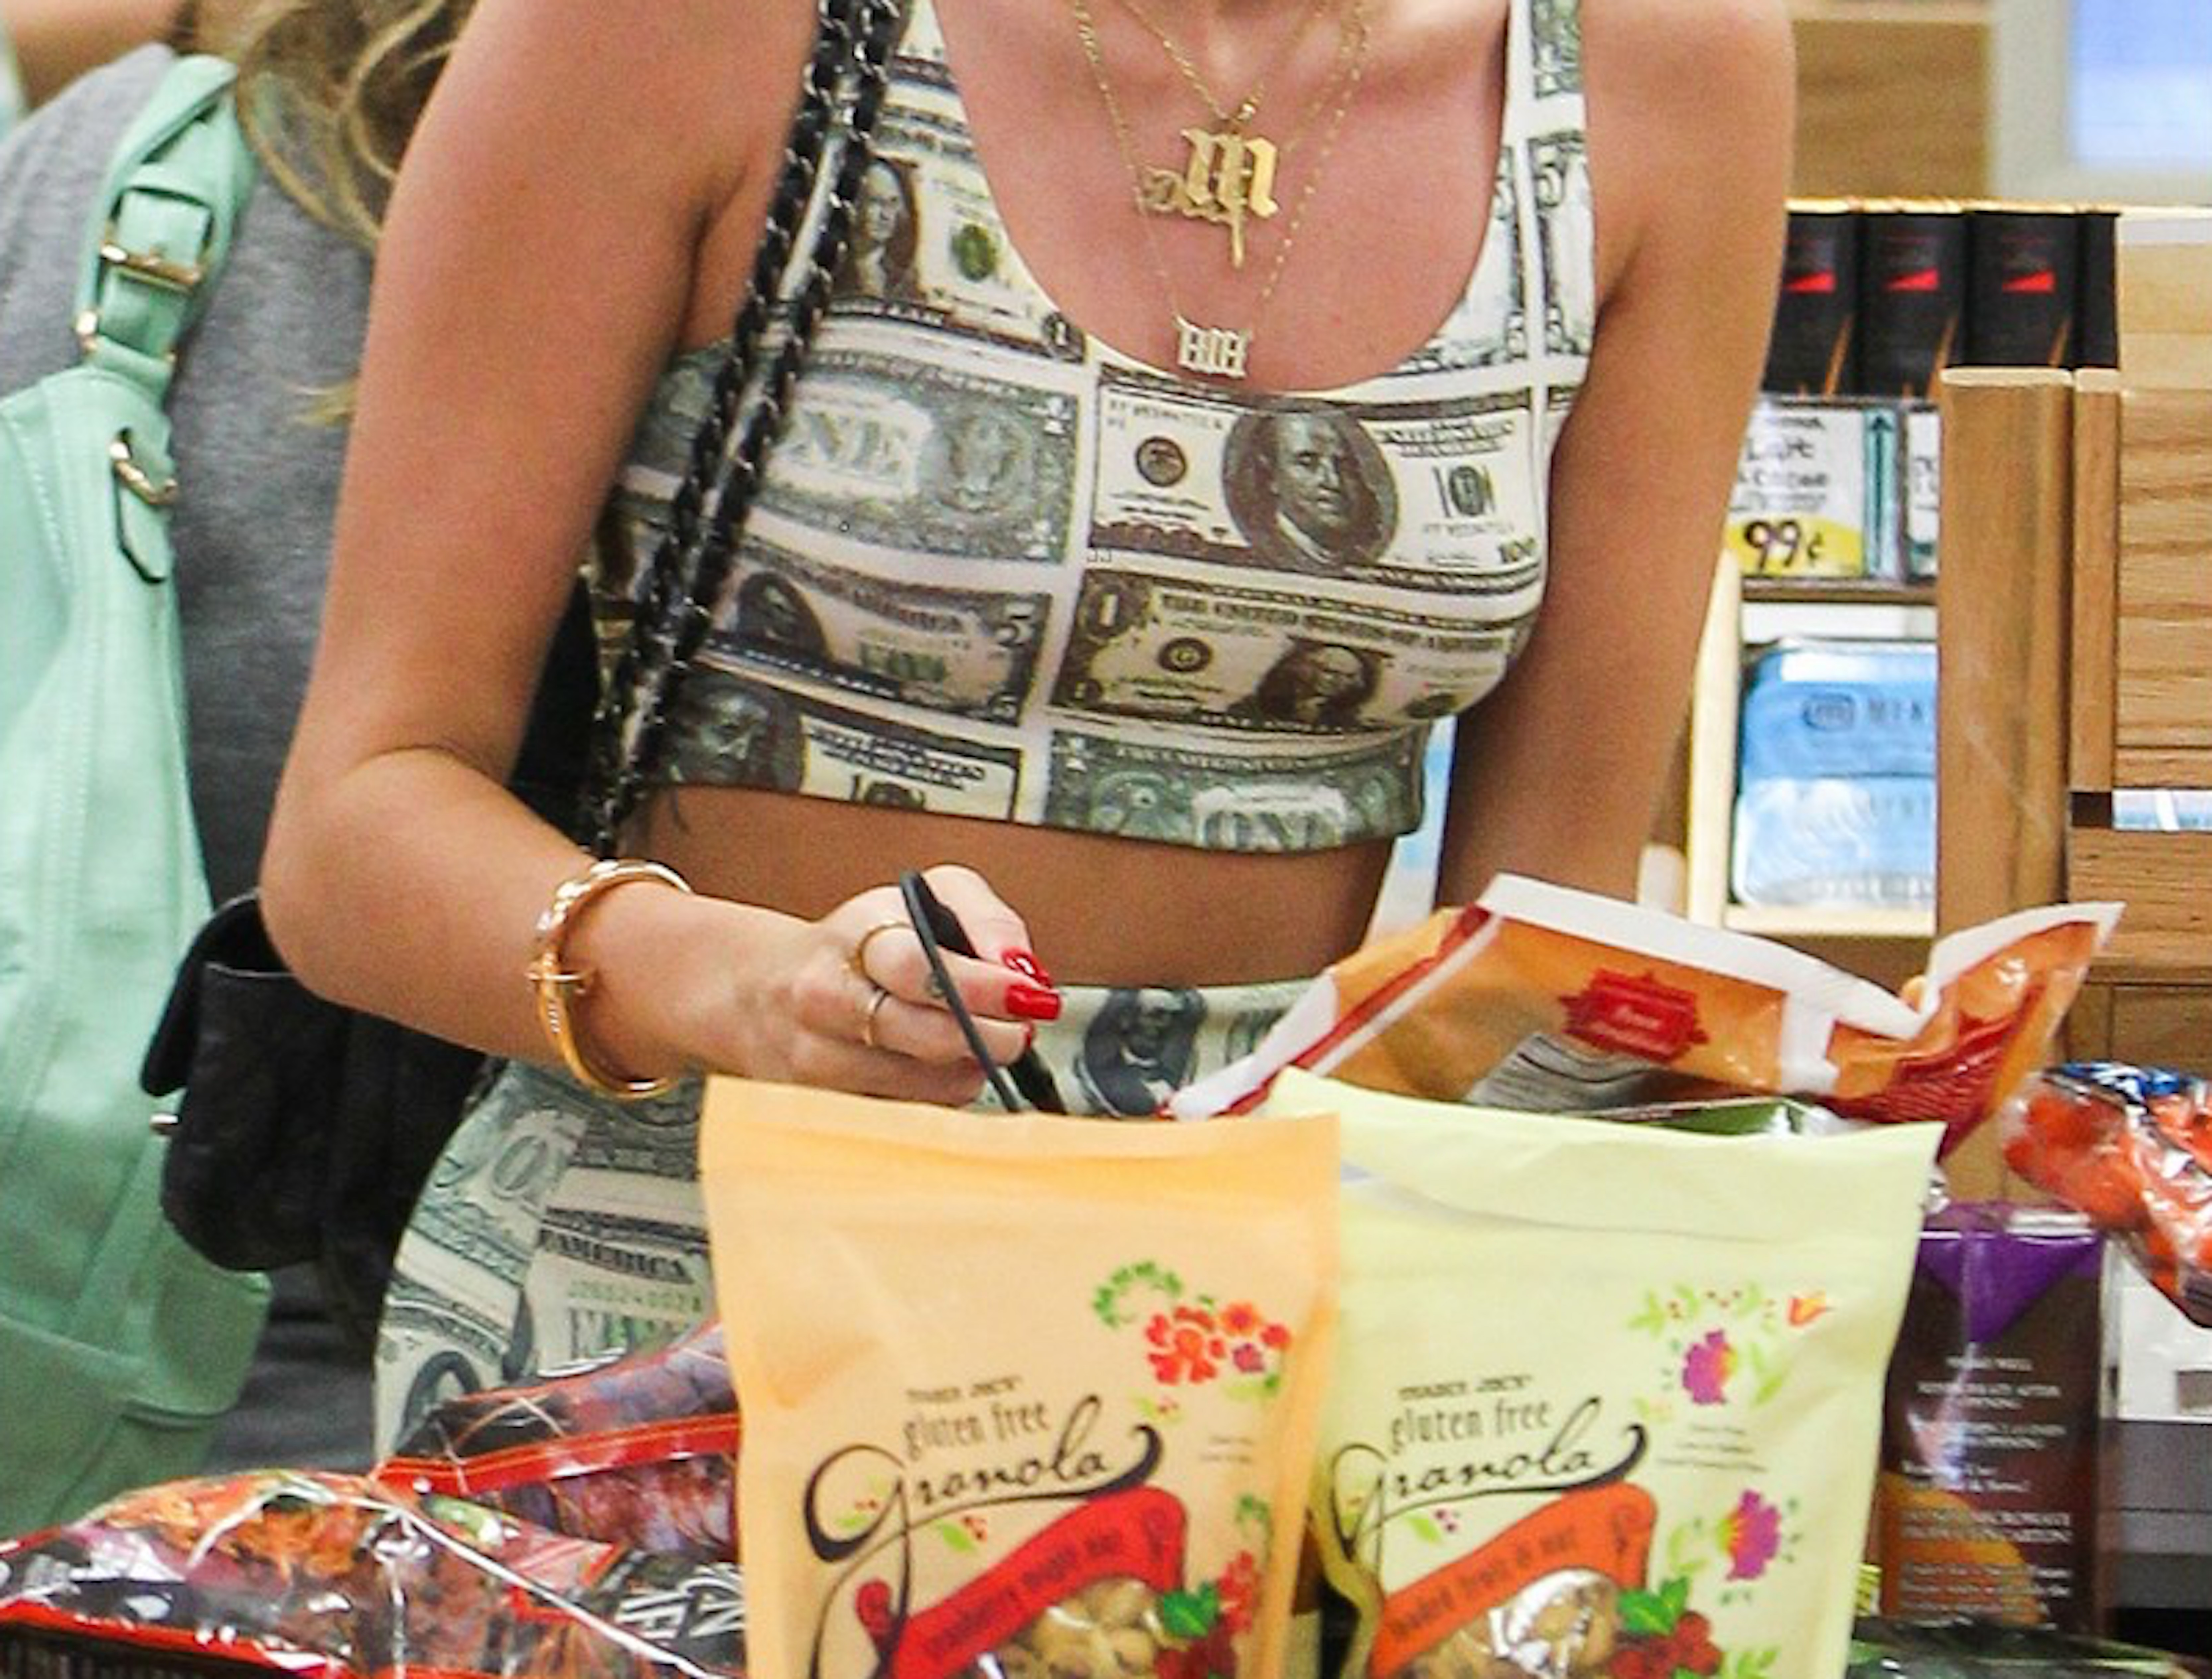 Miley cyrus grocery shopping